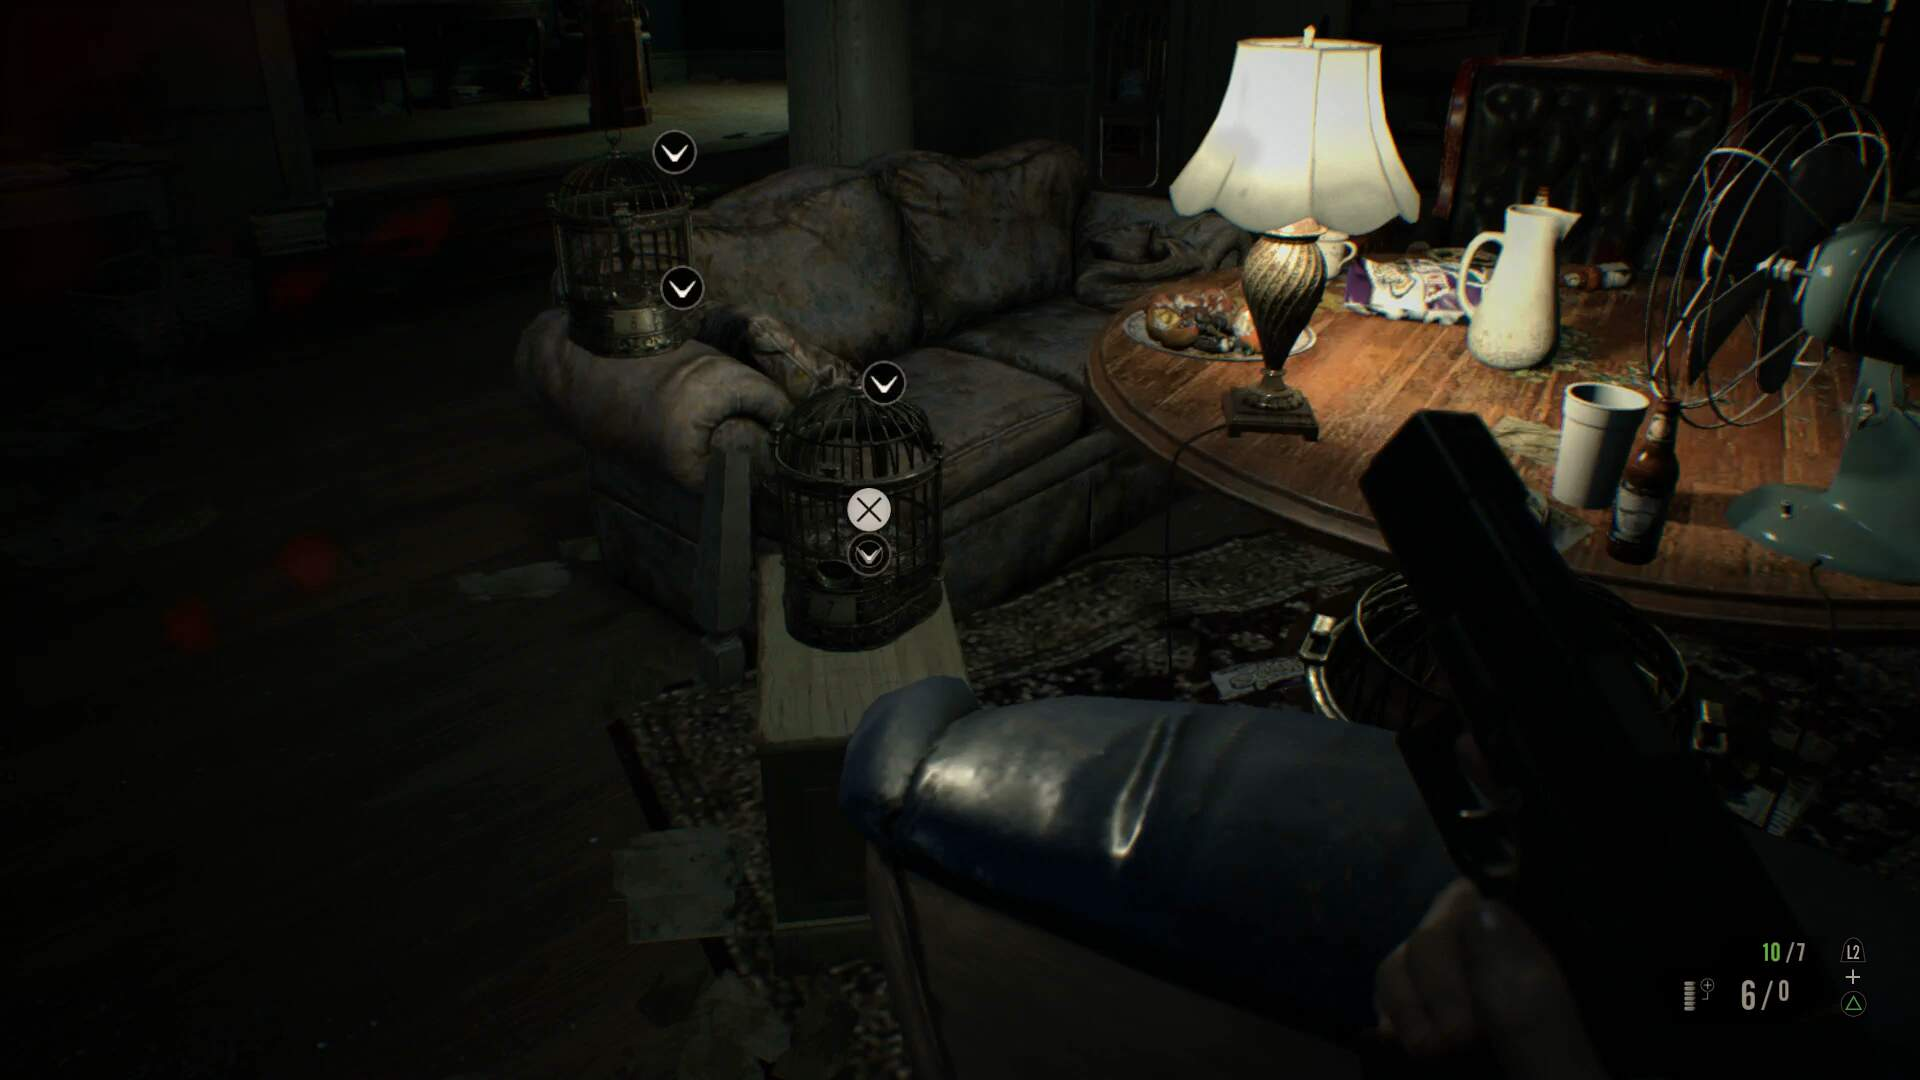 Resident Evil 7 Guide: All 33 Antique Coins in Madhouse Mode Locations - Find All Coins in Madhouse Mode